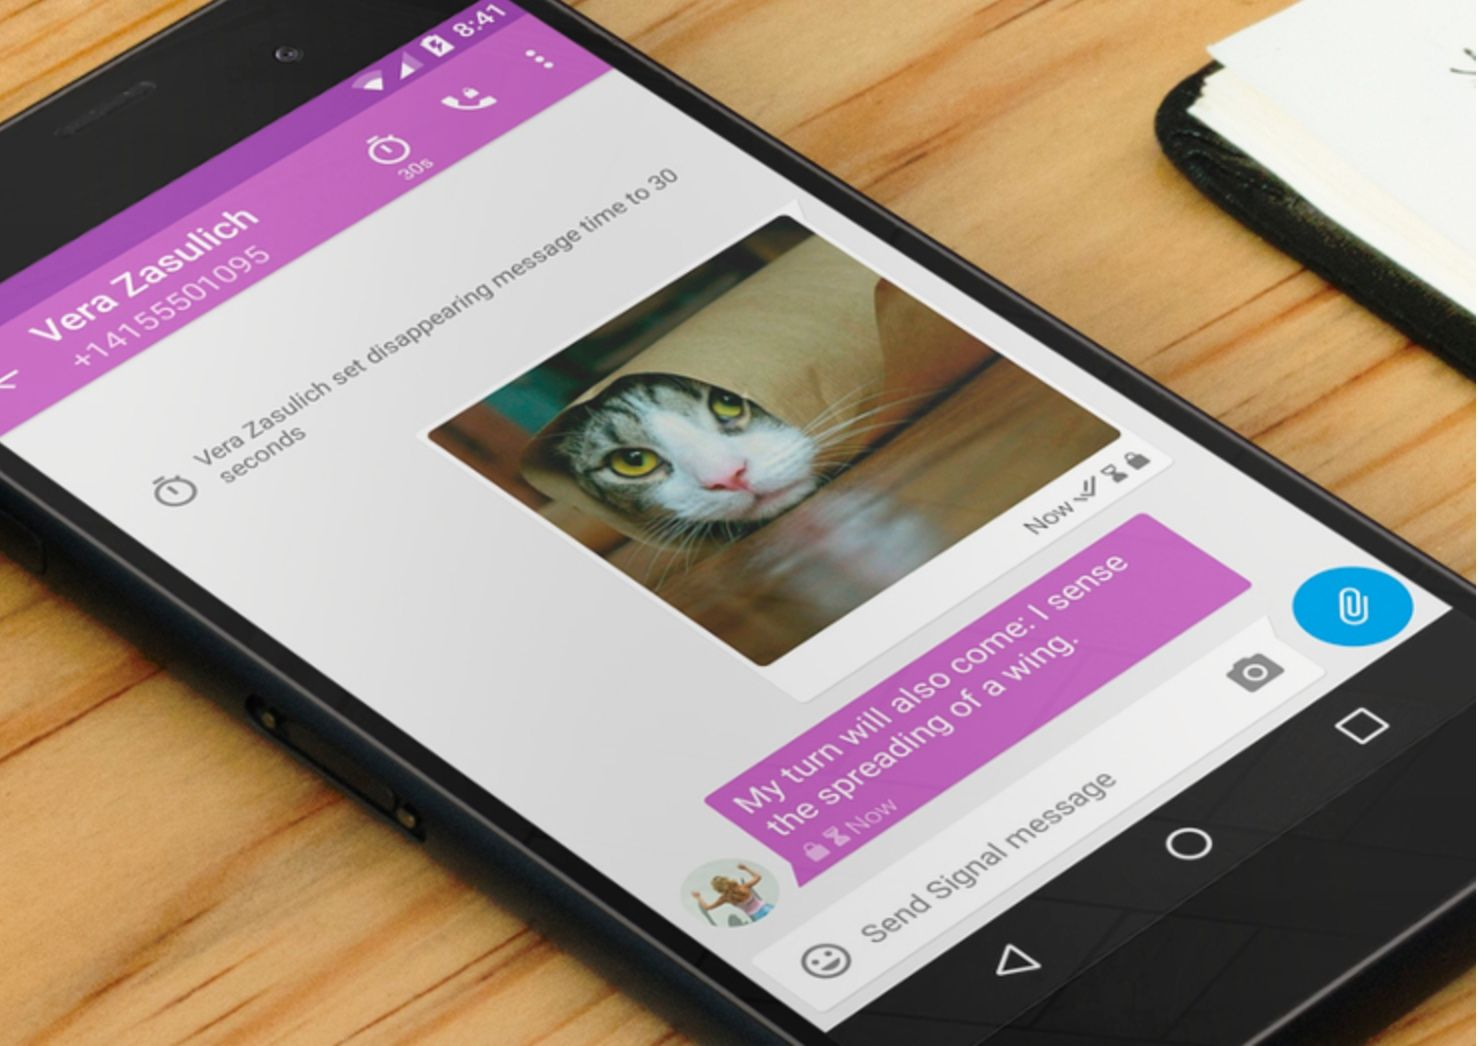 Encrypted chat app Signal sidesteps censorship in Cuba and